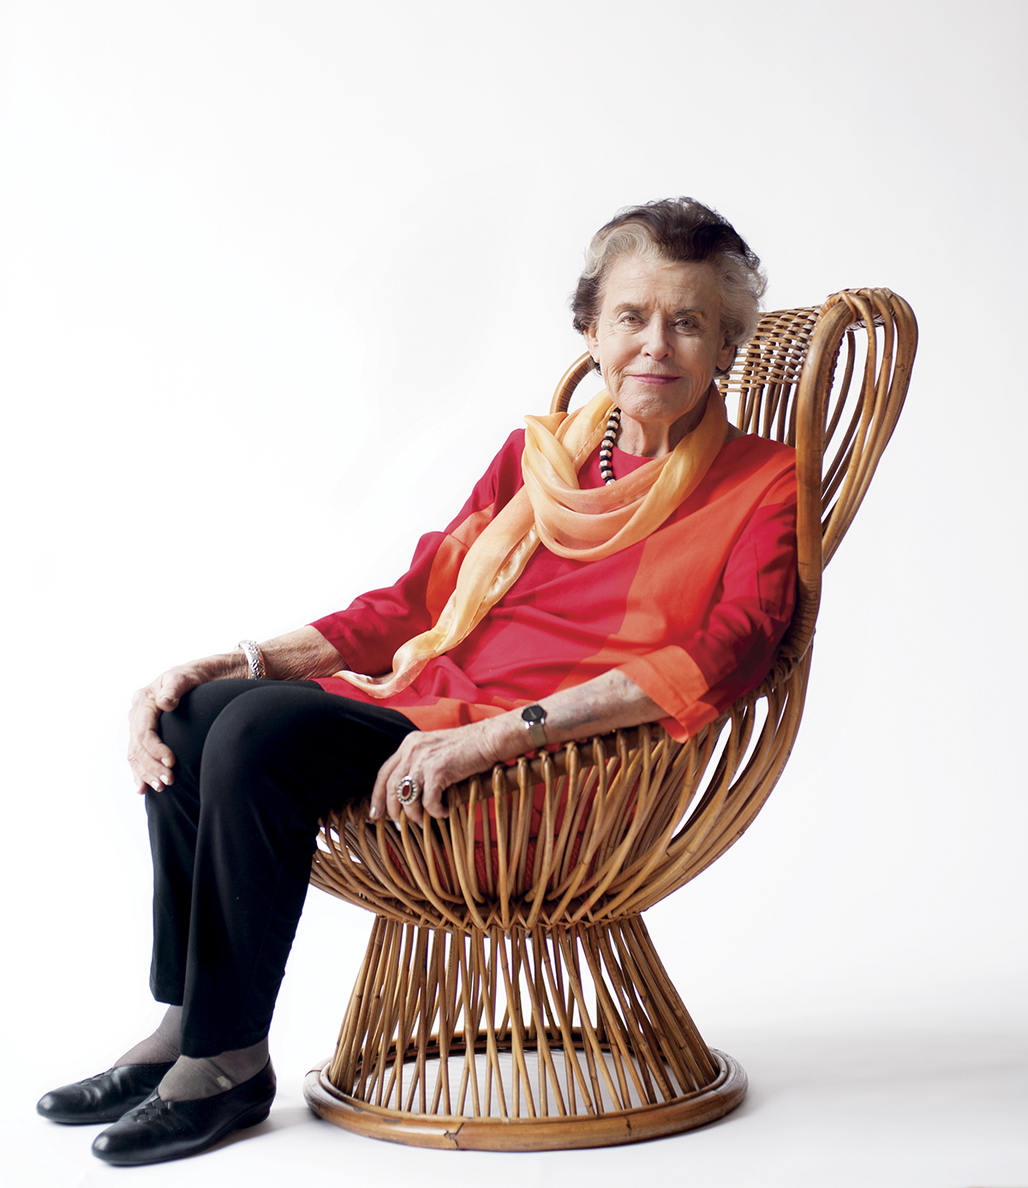 Jane Thompson sitting in a Franco Albini chair. Photograph by Jared Leeds, via Boston Magazine.